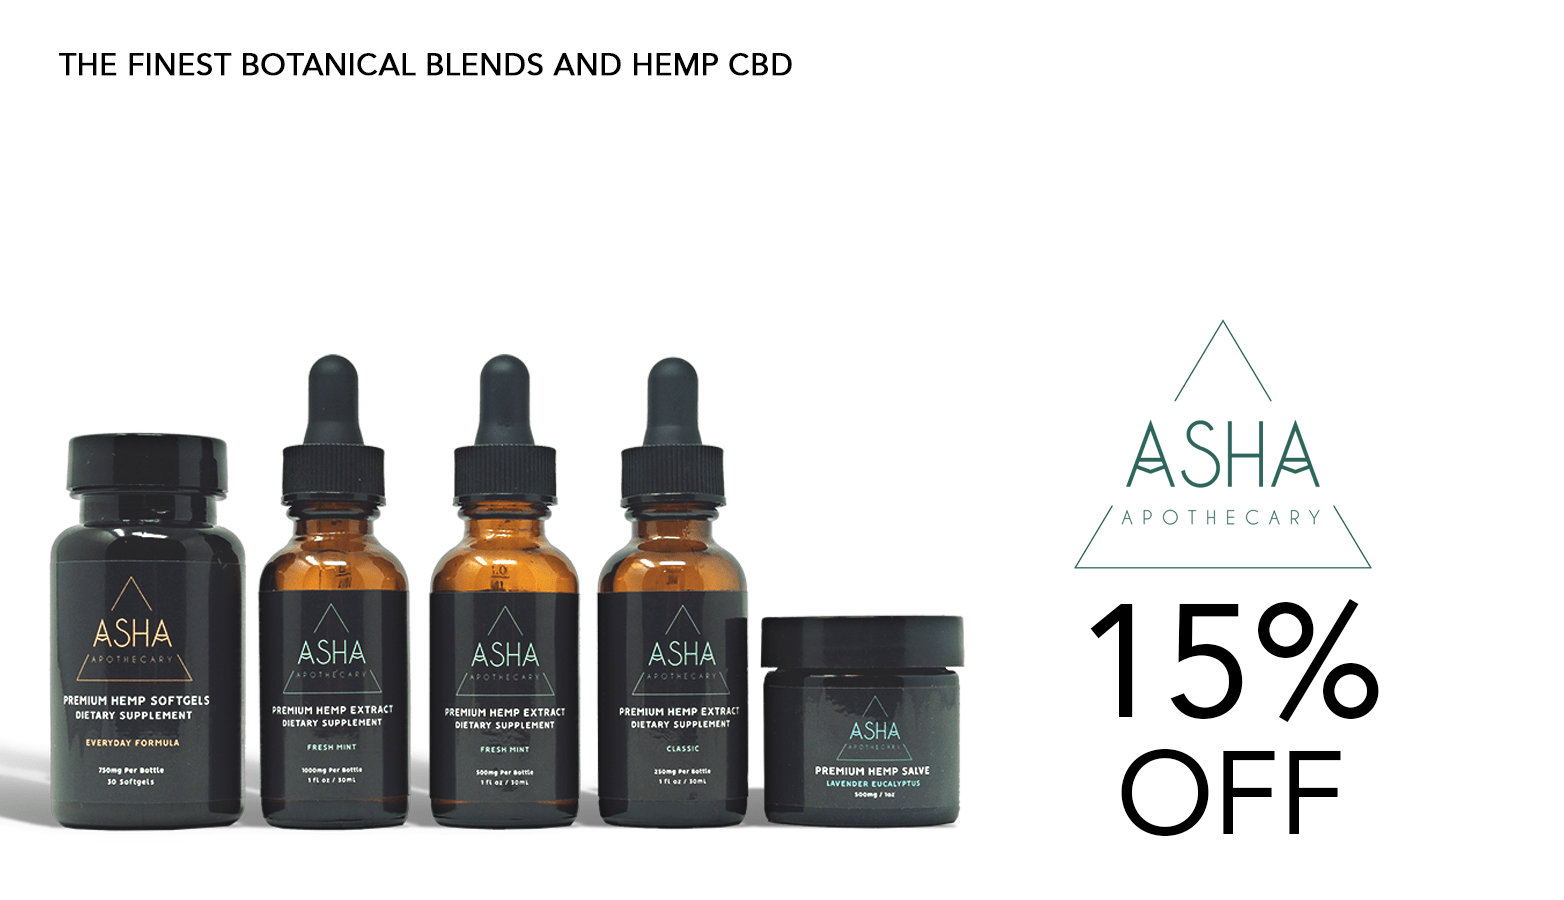 Asha Apothecary CBD Coupon Code Offer Website